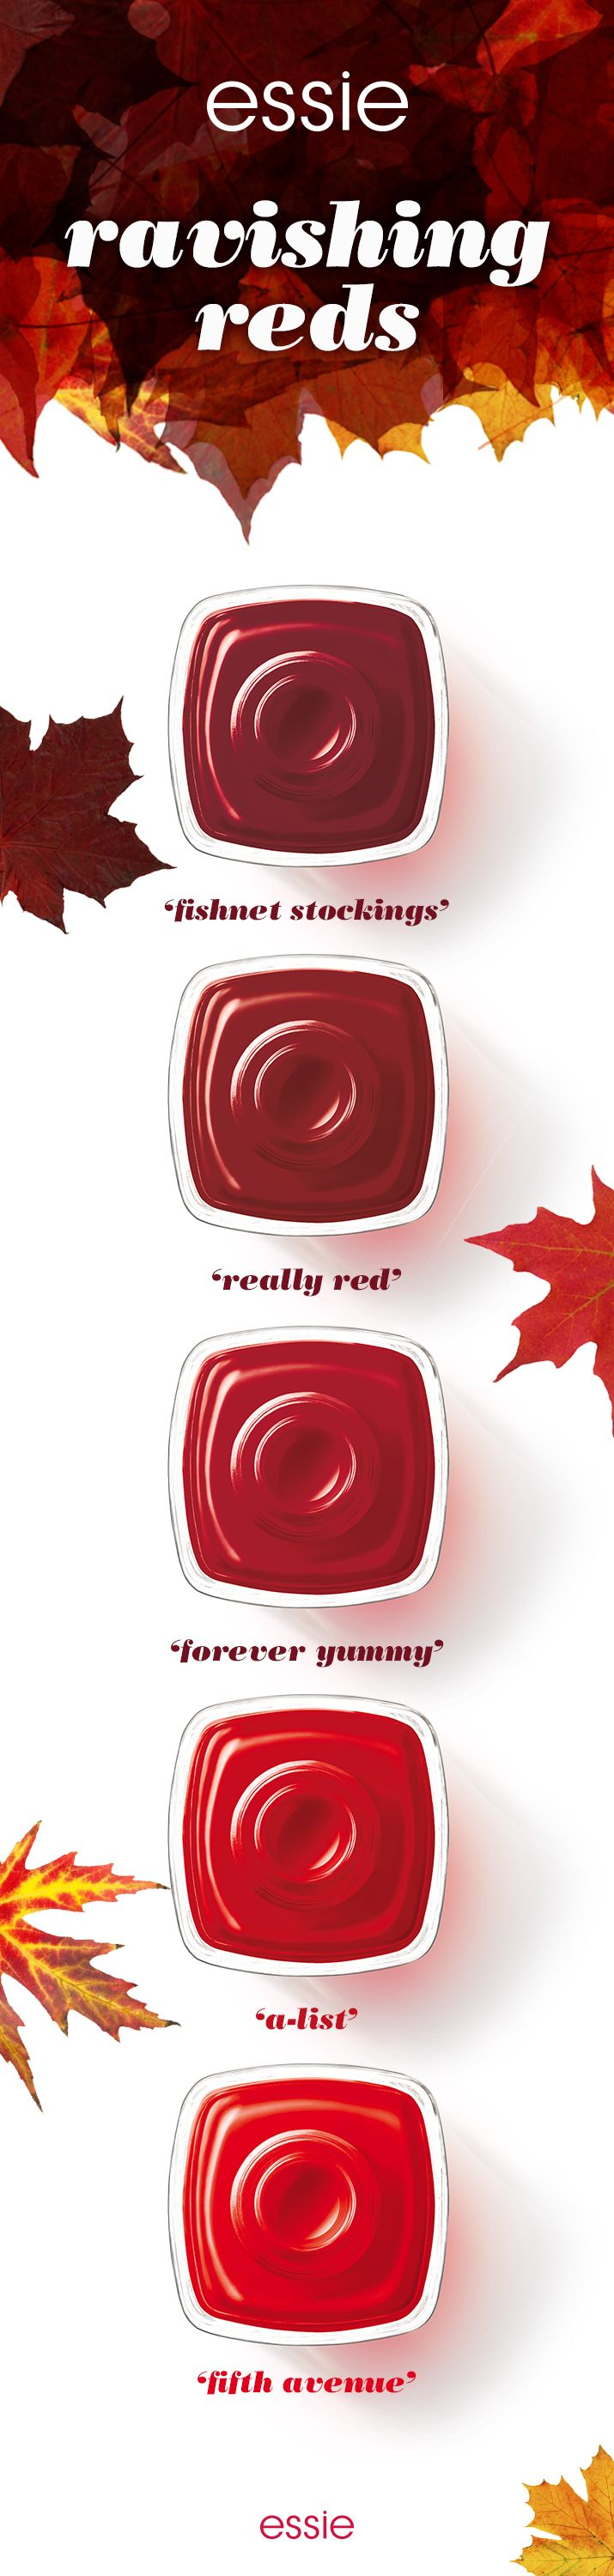 The color of love never goes out of style. This fall, embrace all the ravishing essie reds. Feel the sophistication of 'a-list', pop of 'fifth avenue', boldness of 'really red', brightness of 'forever